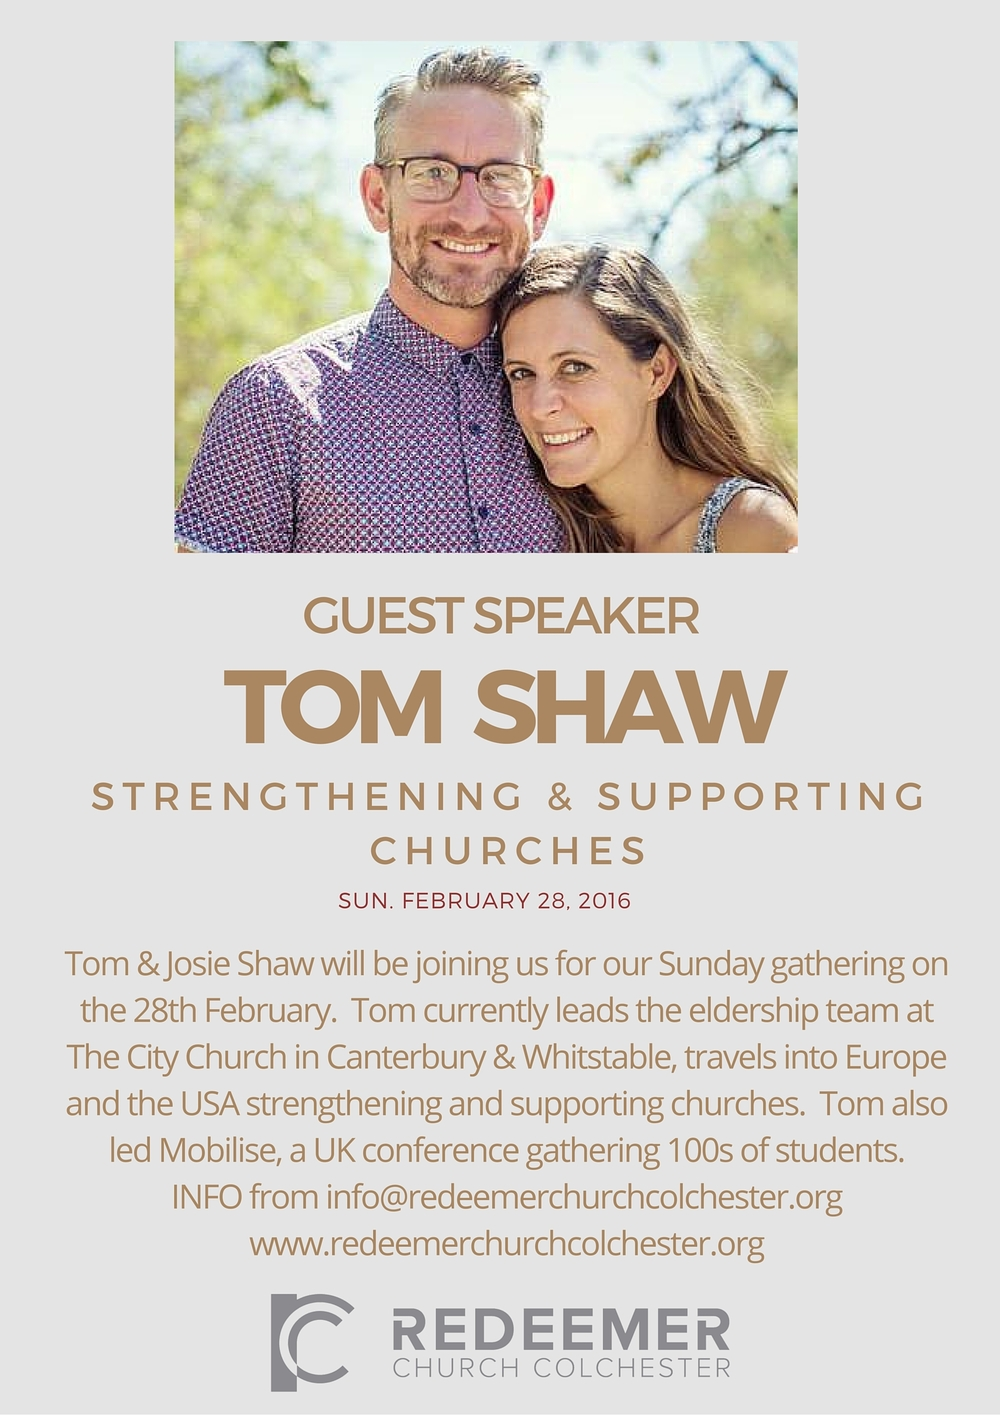 Tom Shaw Event Poster (Gold) - Feb 2016.jpg